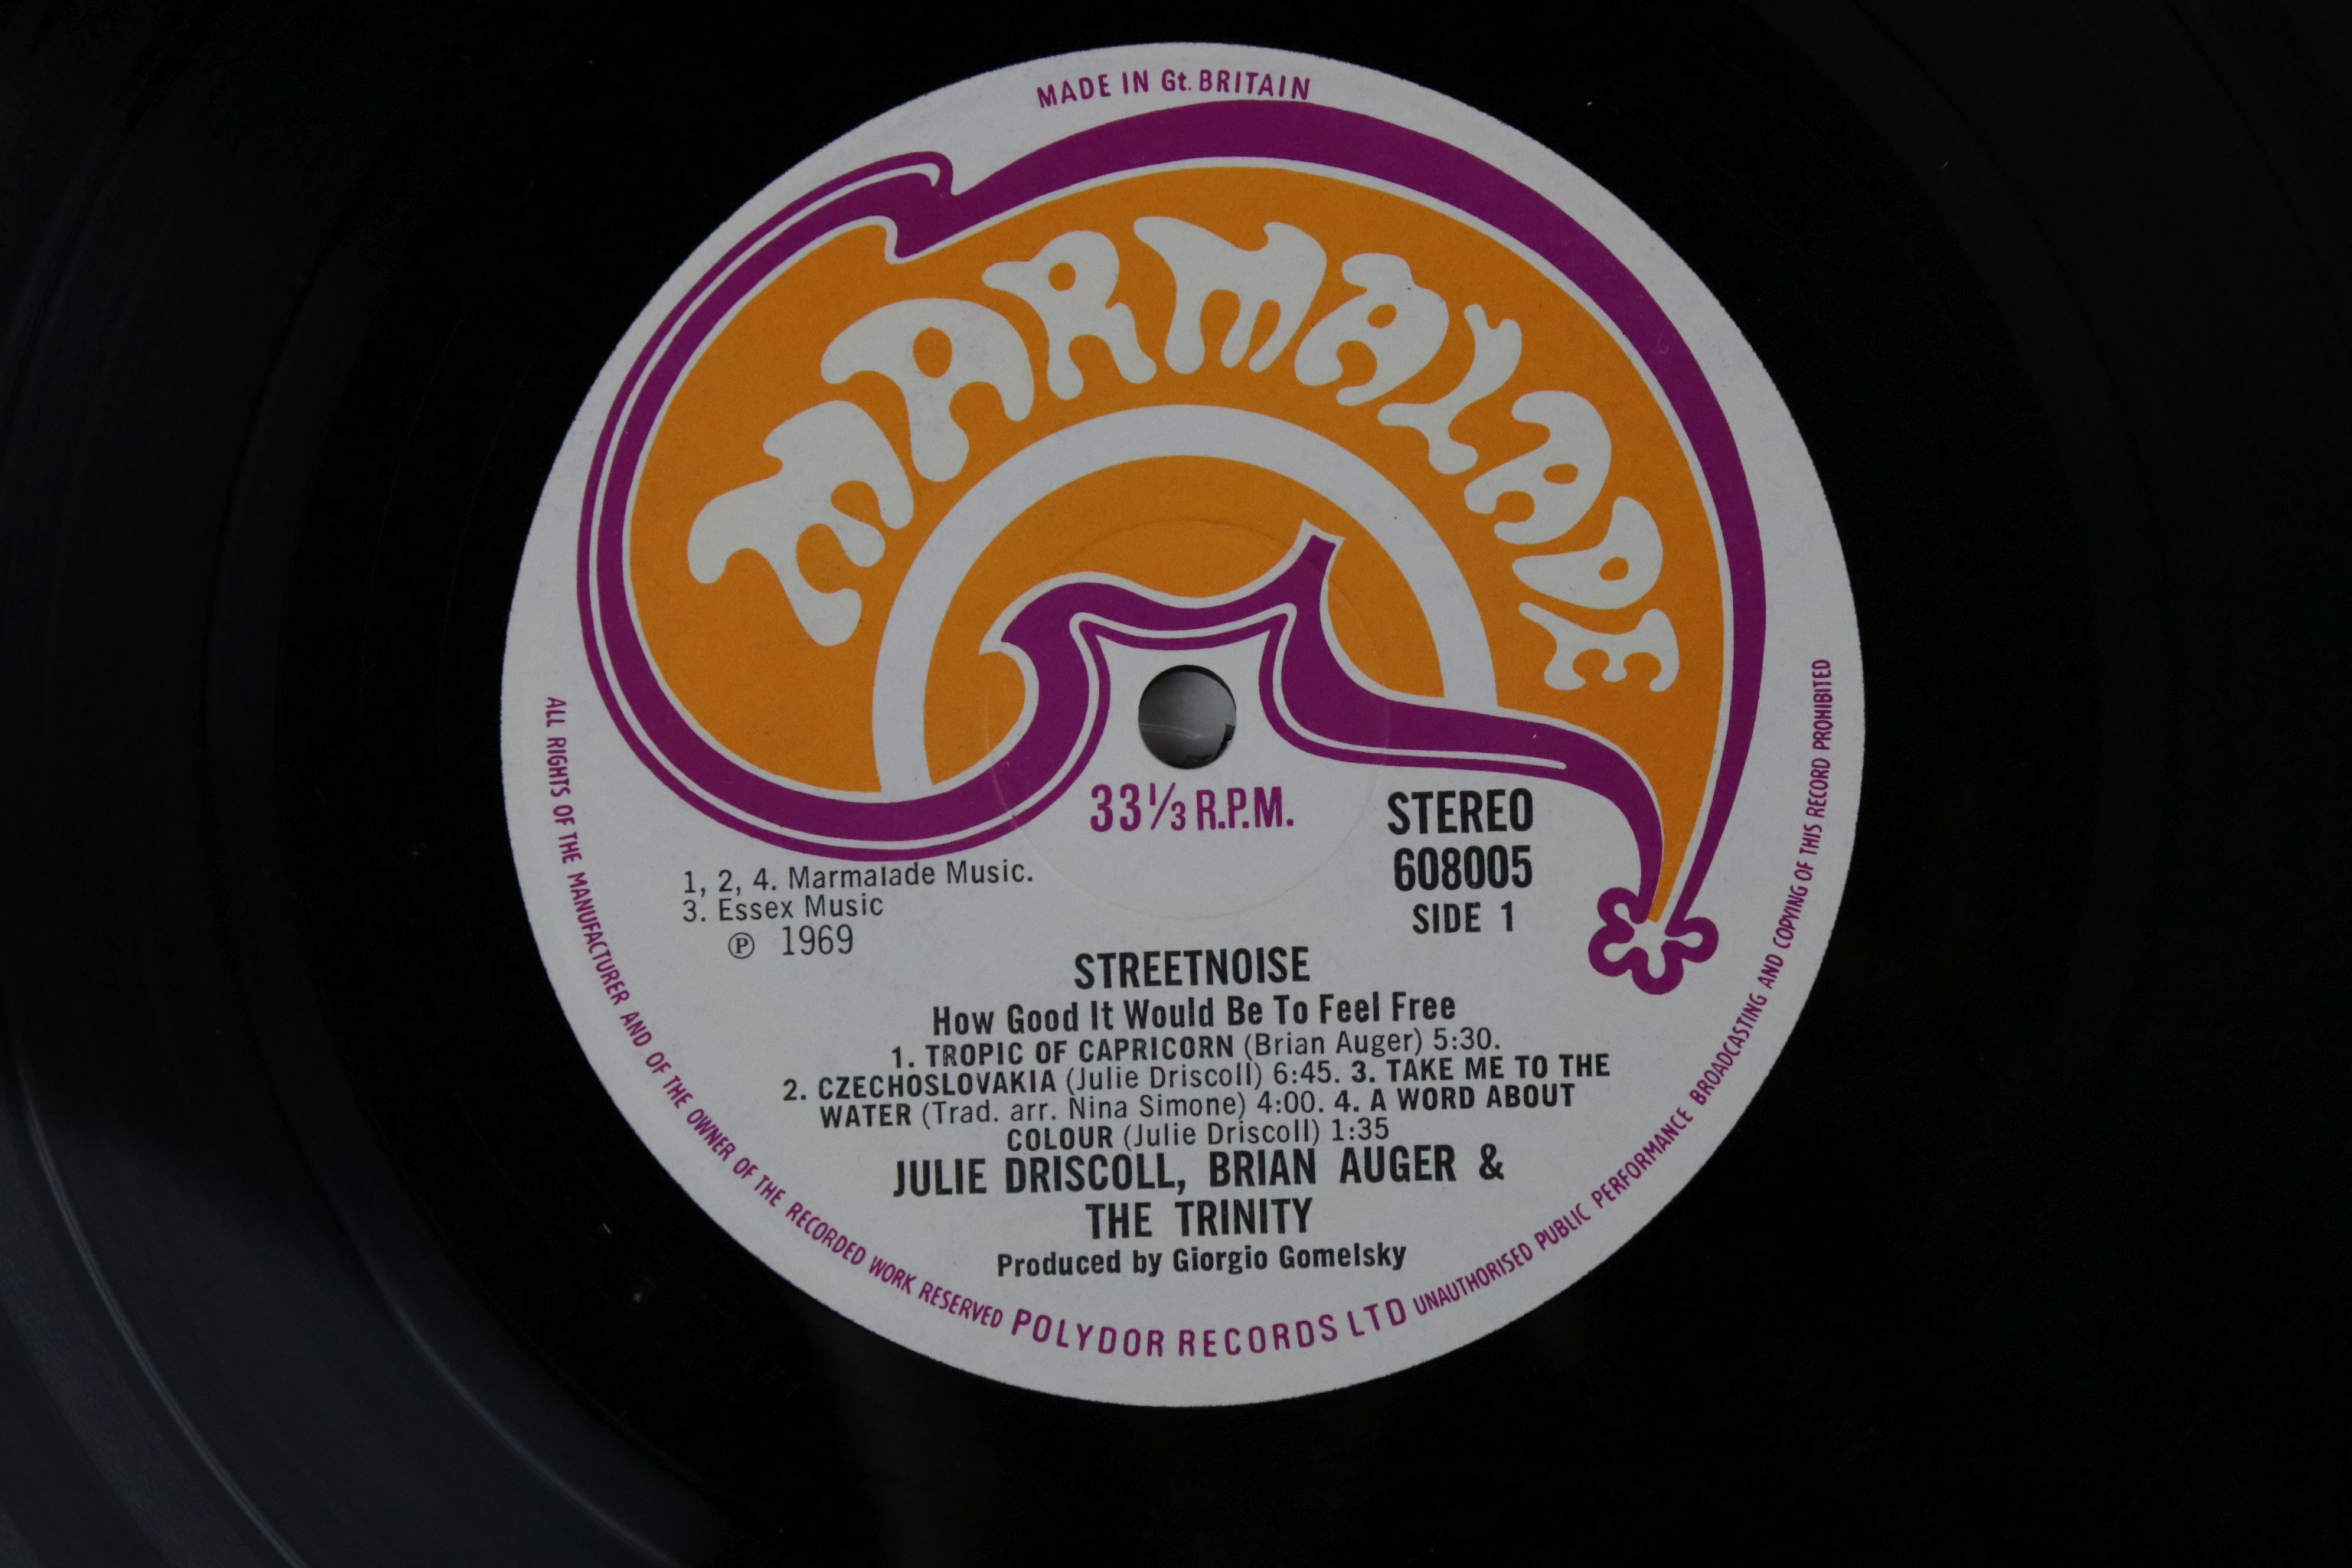 Vinyl - Julie Driscoll and Brian Auger Streetnoise LP on Marmalade 608005/6 Stereo, gatefold sleeve, - Image 4 of 6